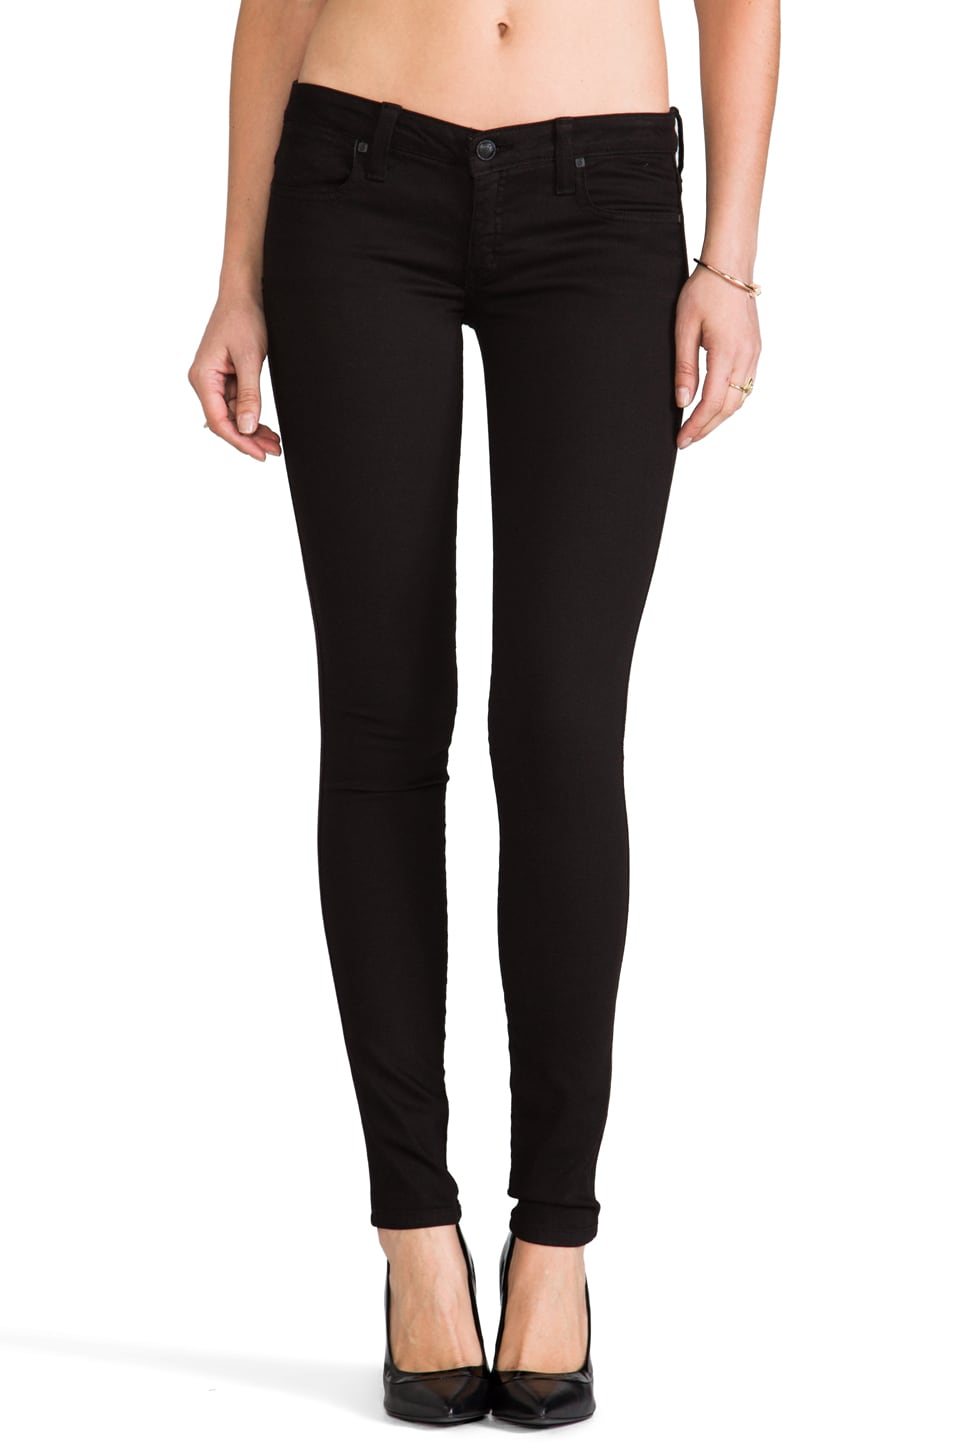 Frankie B. Jeans My BFF Legging in Black